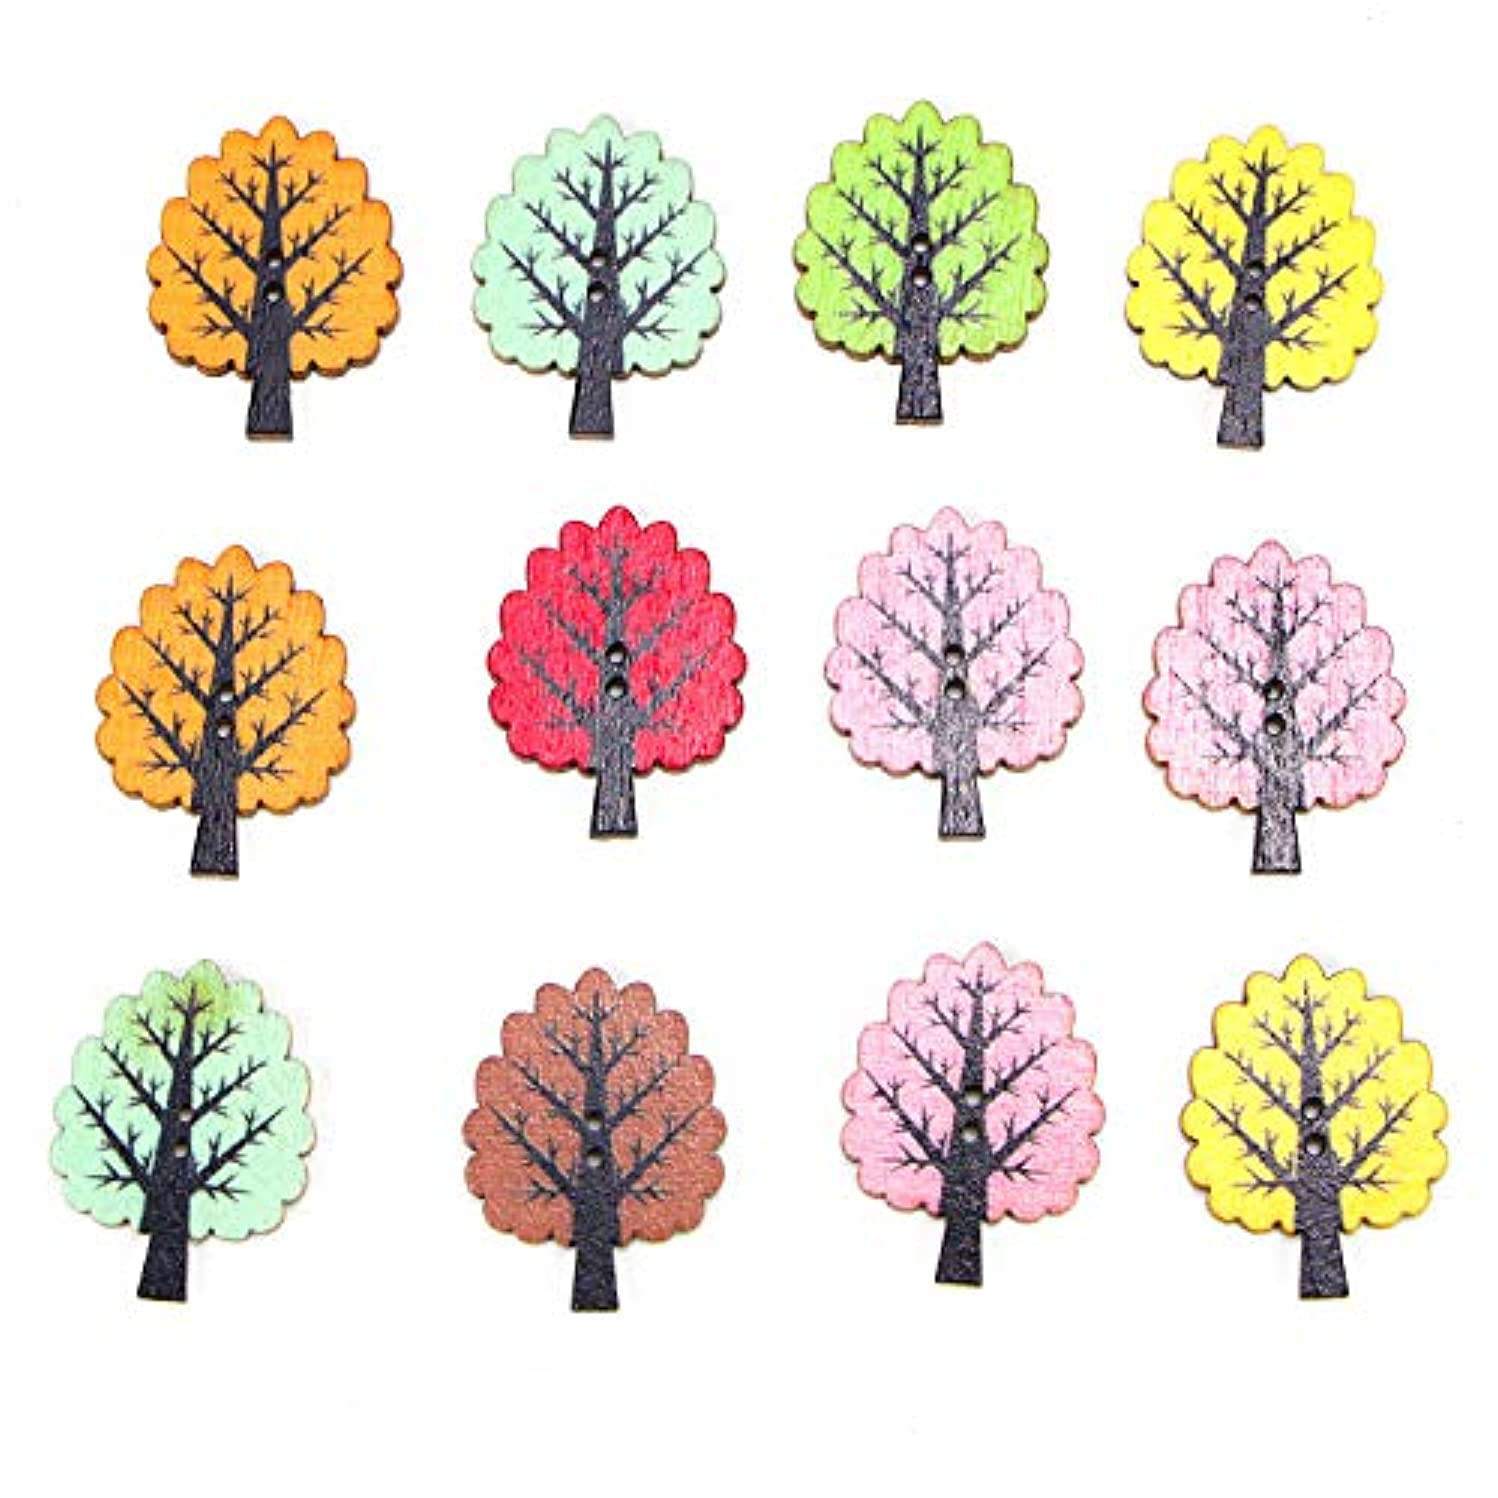 Monrocco 100Pcs Mixed Color Trees Wooden Buttons Sewing Button 2 Holes Buttons for DIY Craft Decoration Sewing Craft Scrapbooking